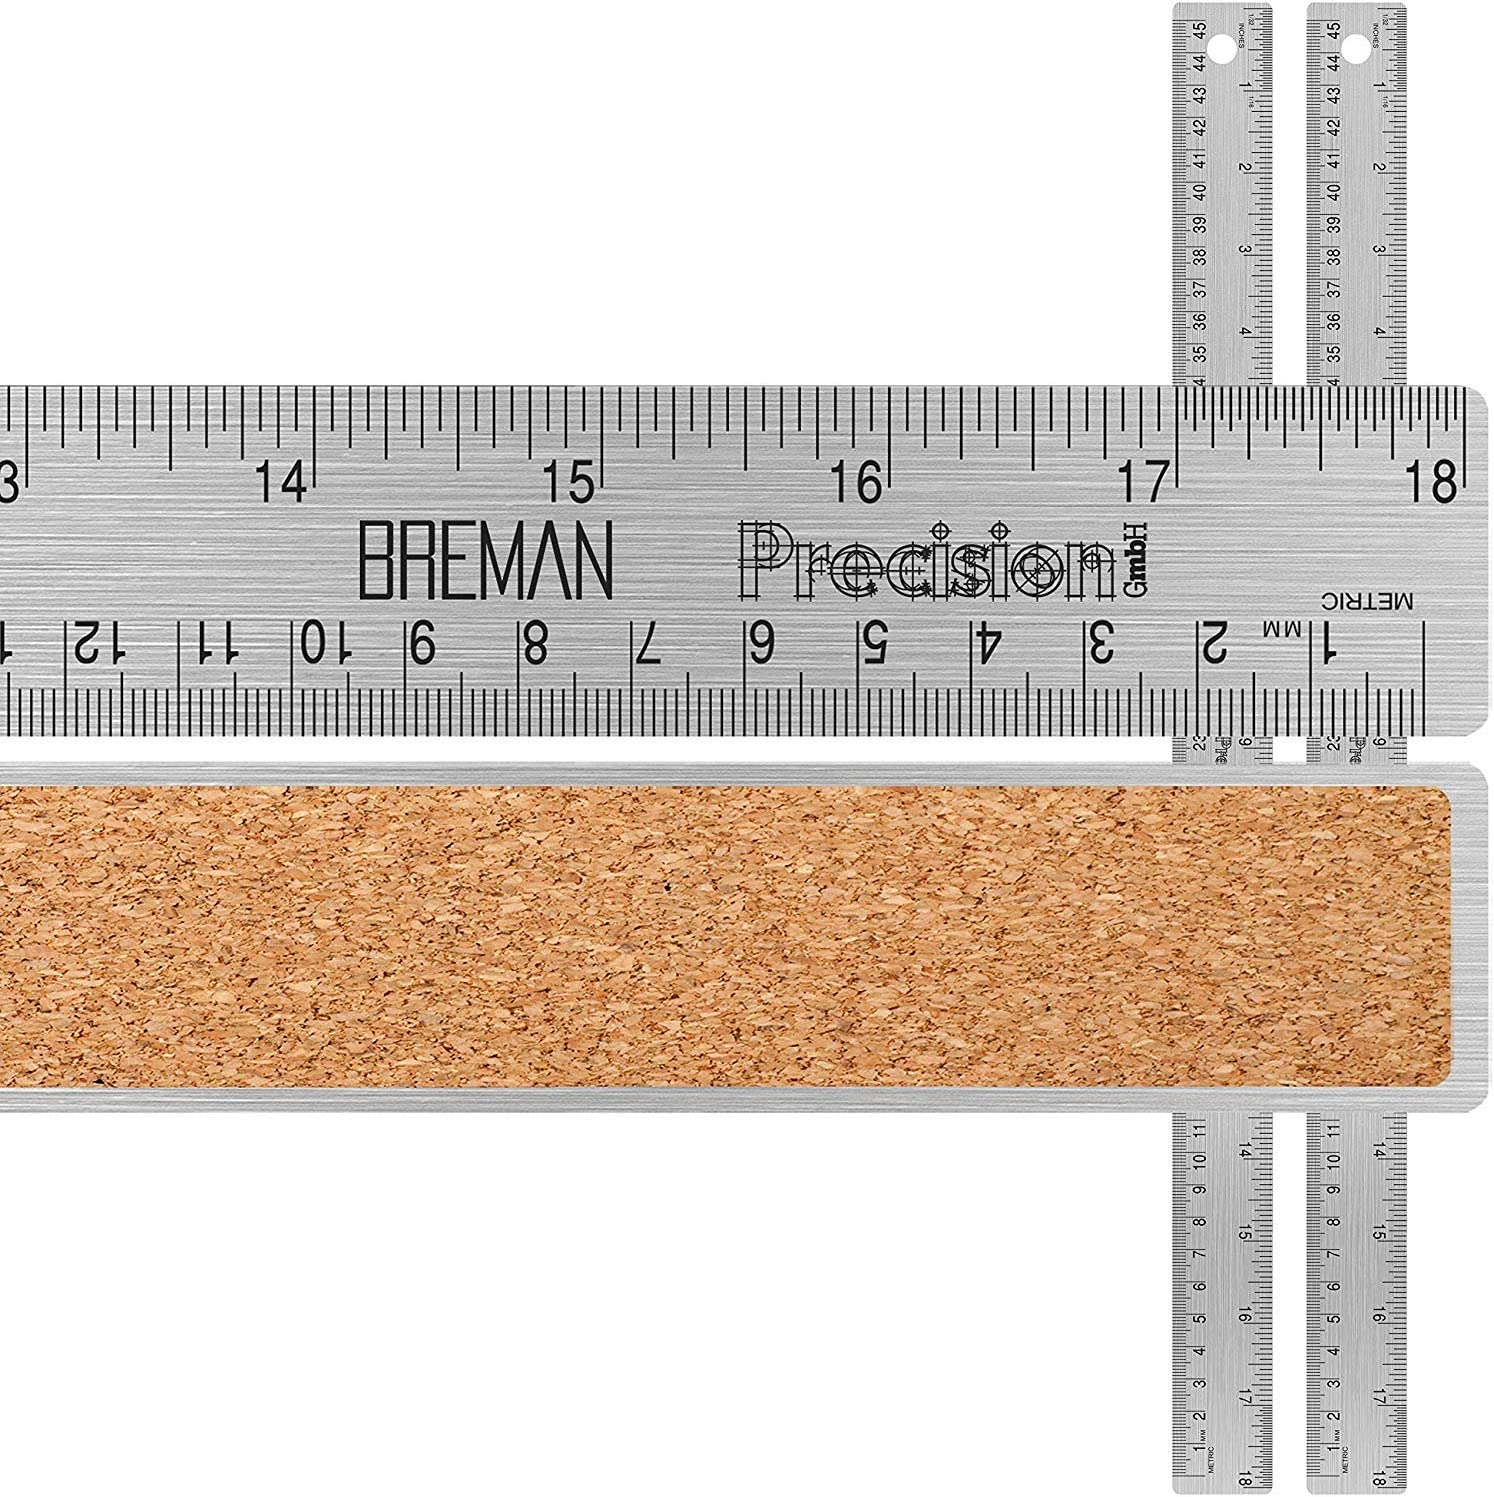 Breman Precision Stainless Steel 18 Inch Metal Ruler 2 Pack - Straight Edge Ruler with Inch and Metric Graduations for School Office Engineering Woodworking - Flexible with Non Slip Cork Base